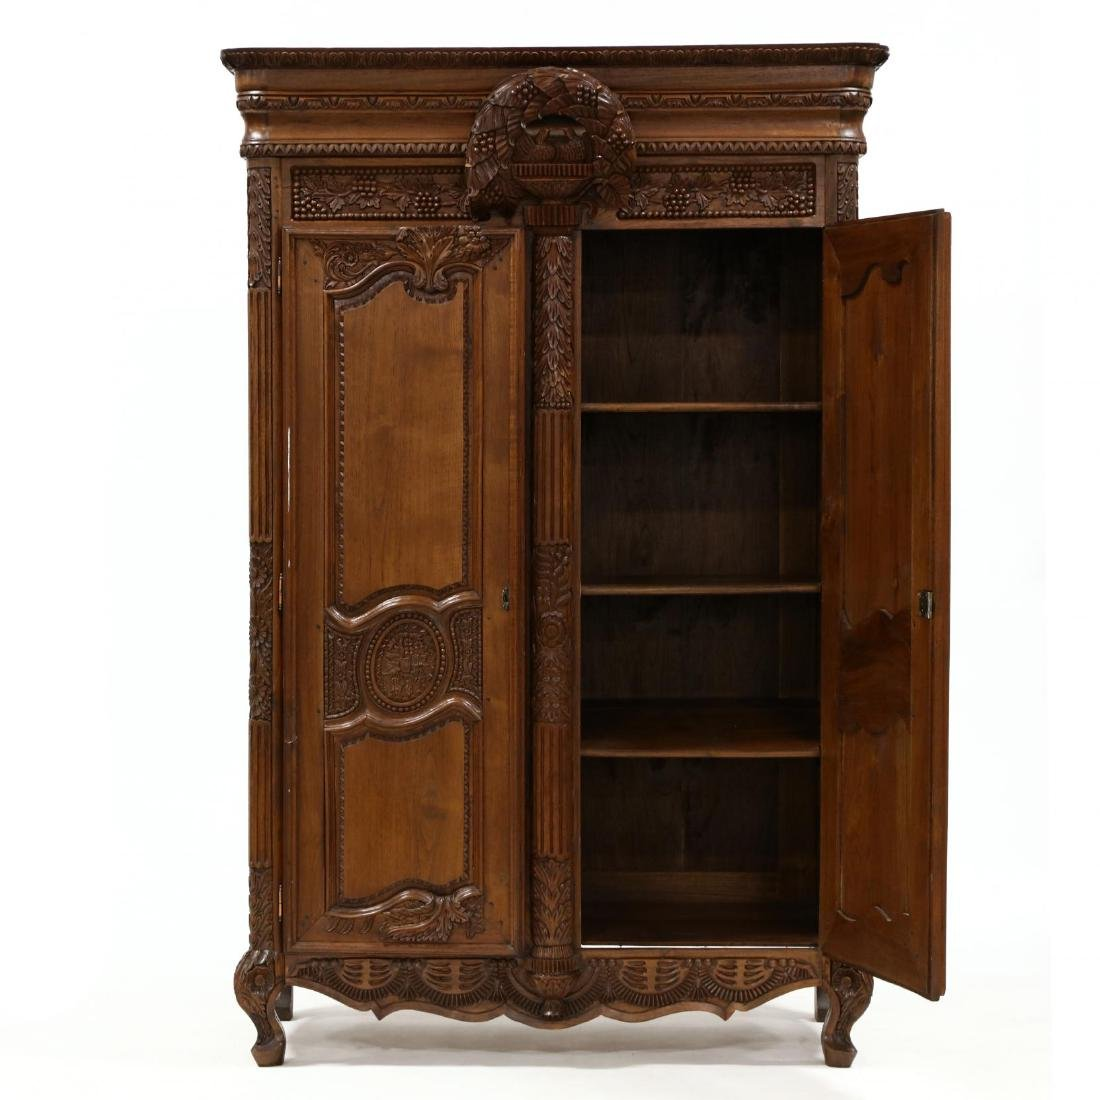 French Provincial Style Carved Mahogany Armoire - 2